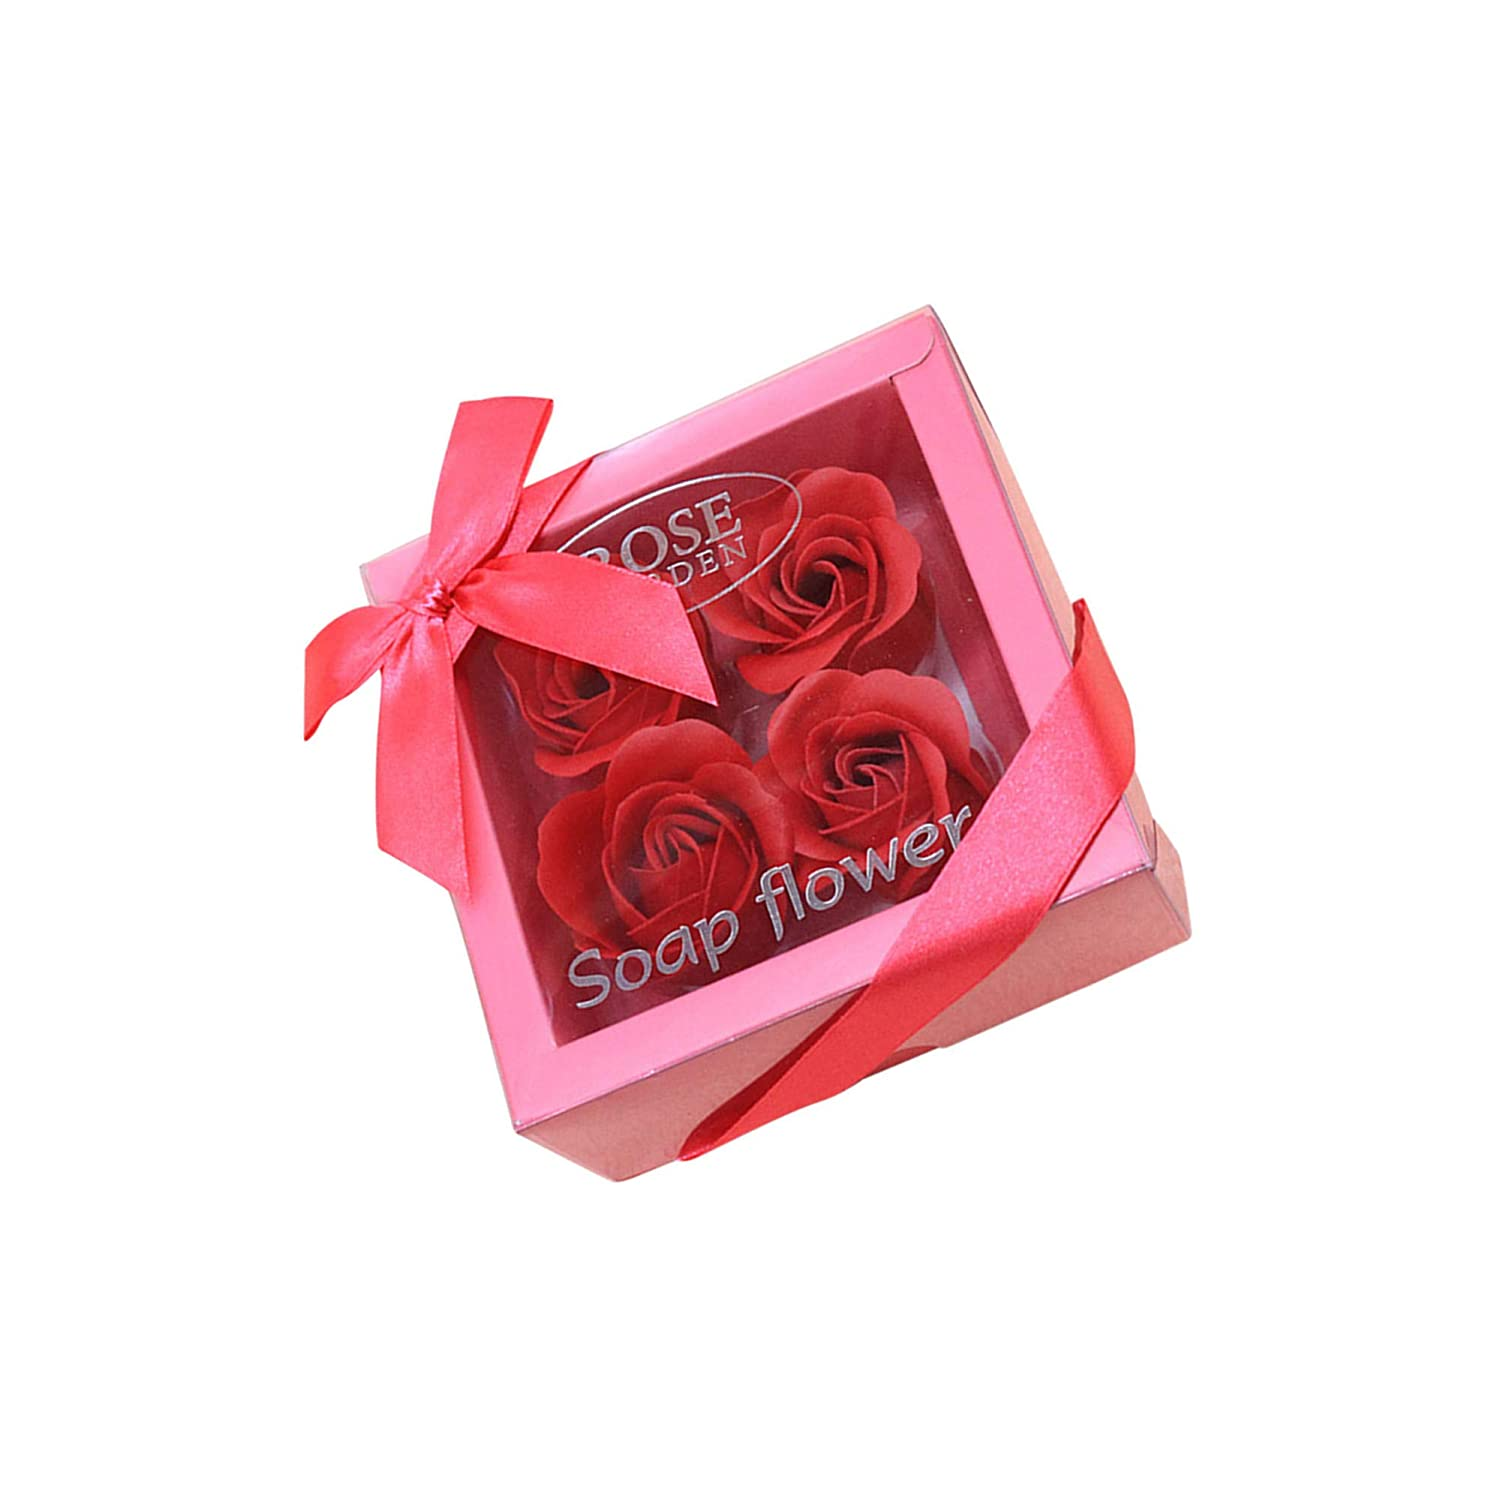 Codiak 20 PCS Soap Rose Flower Floral Scented Bath Rose Flower Guest Soap Shaped Petals Best Gifts for Anniversary//Birthday//Wedding//Valentine/'s Day Box Red